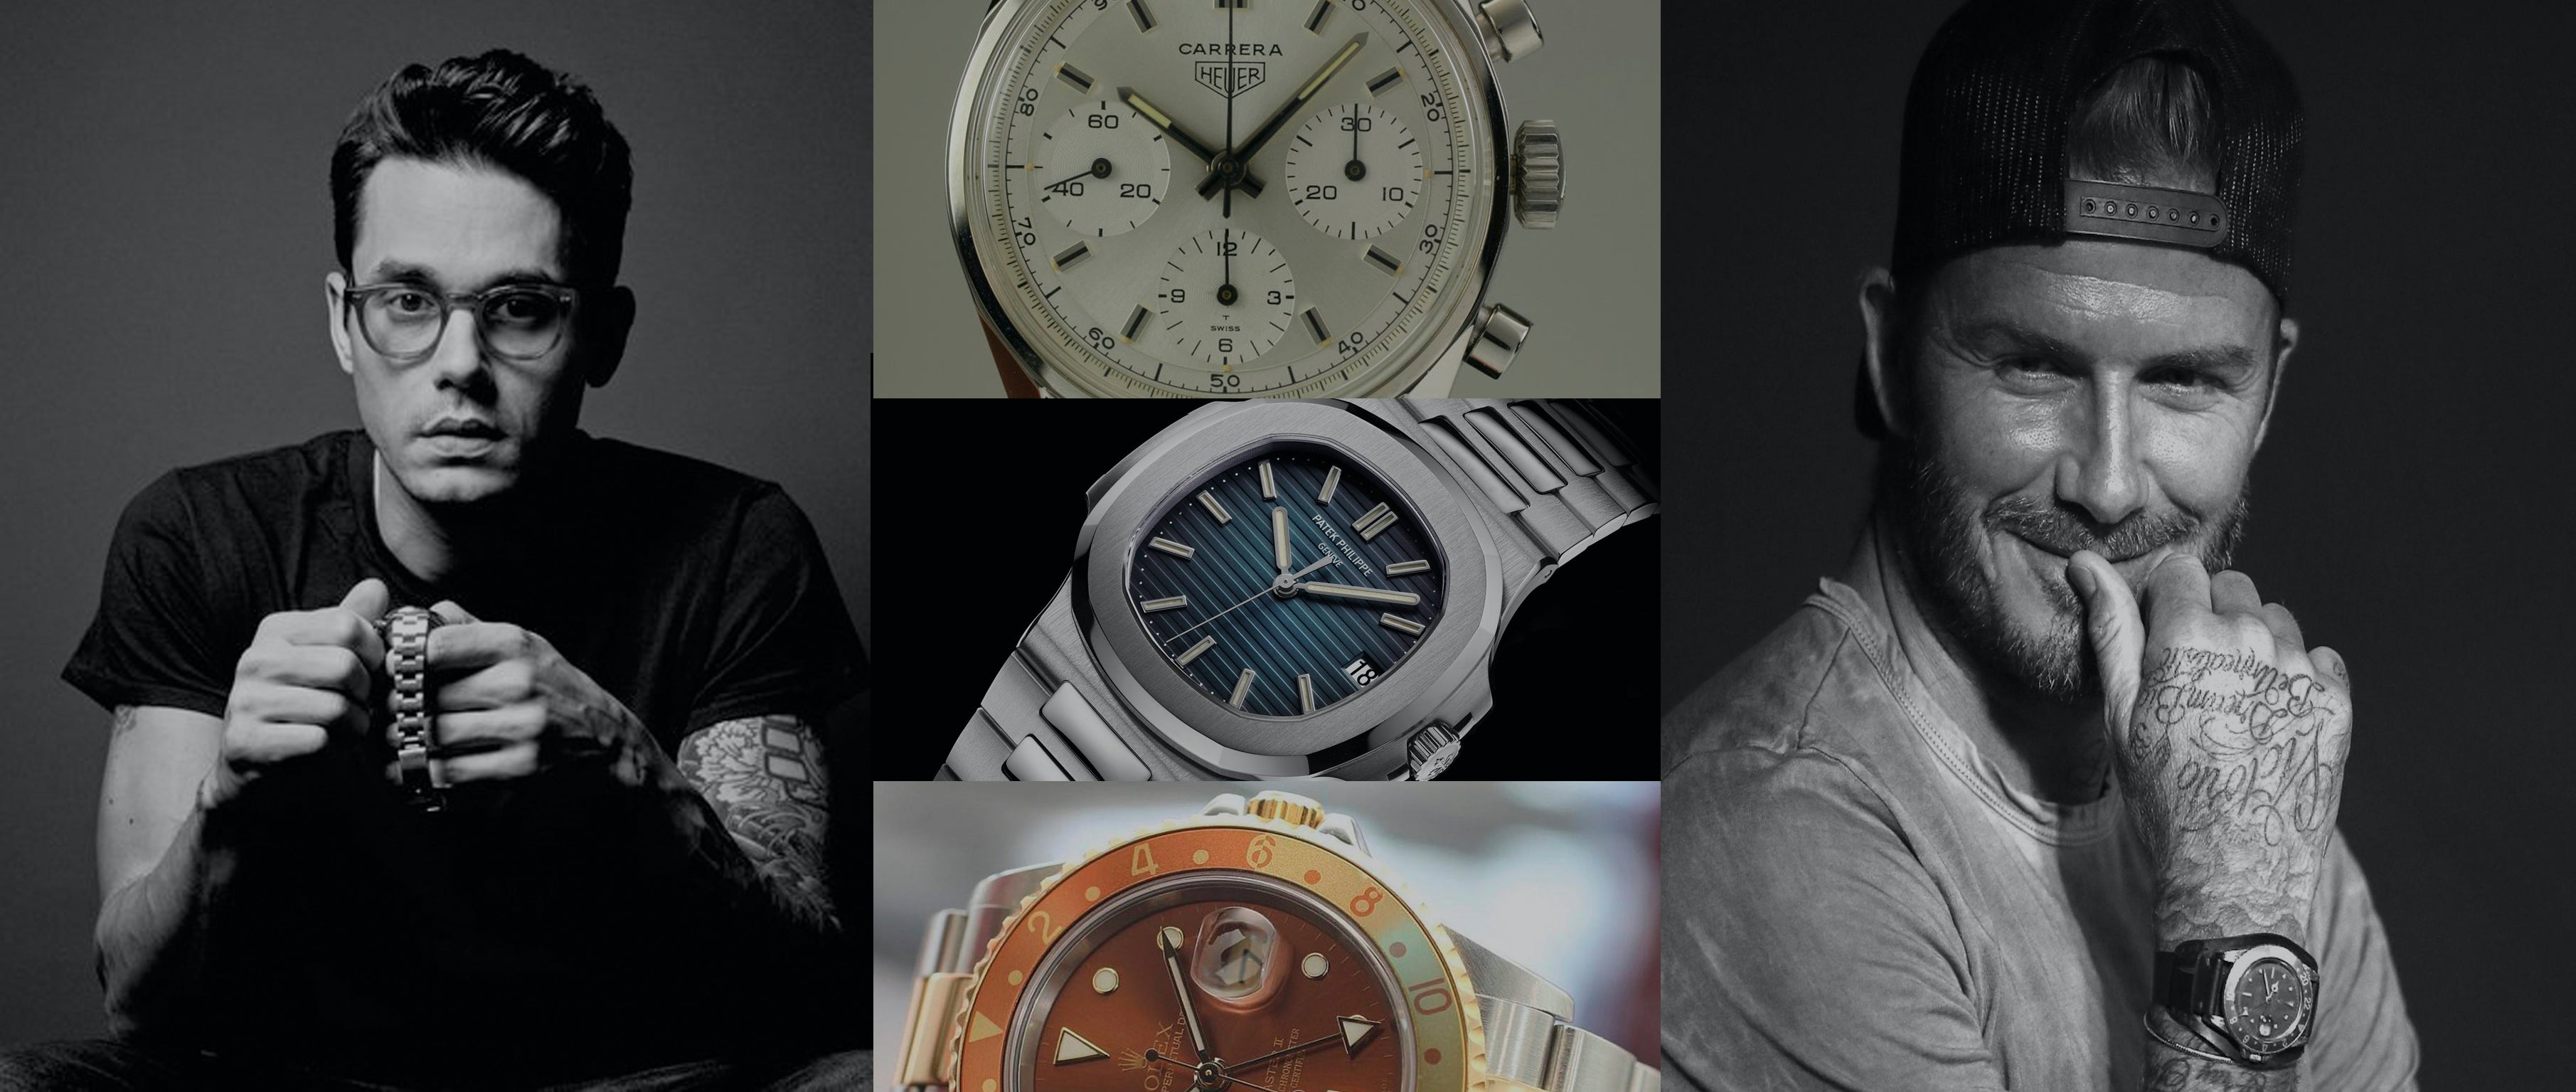 oris the are lune ew s watch wearing artelier moon celebrity watches awards grande eve face celebrities which